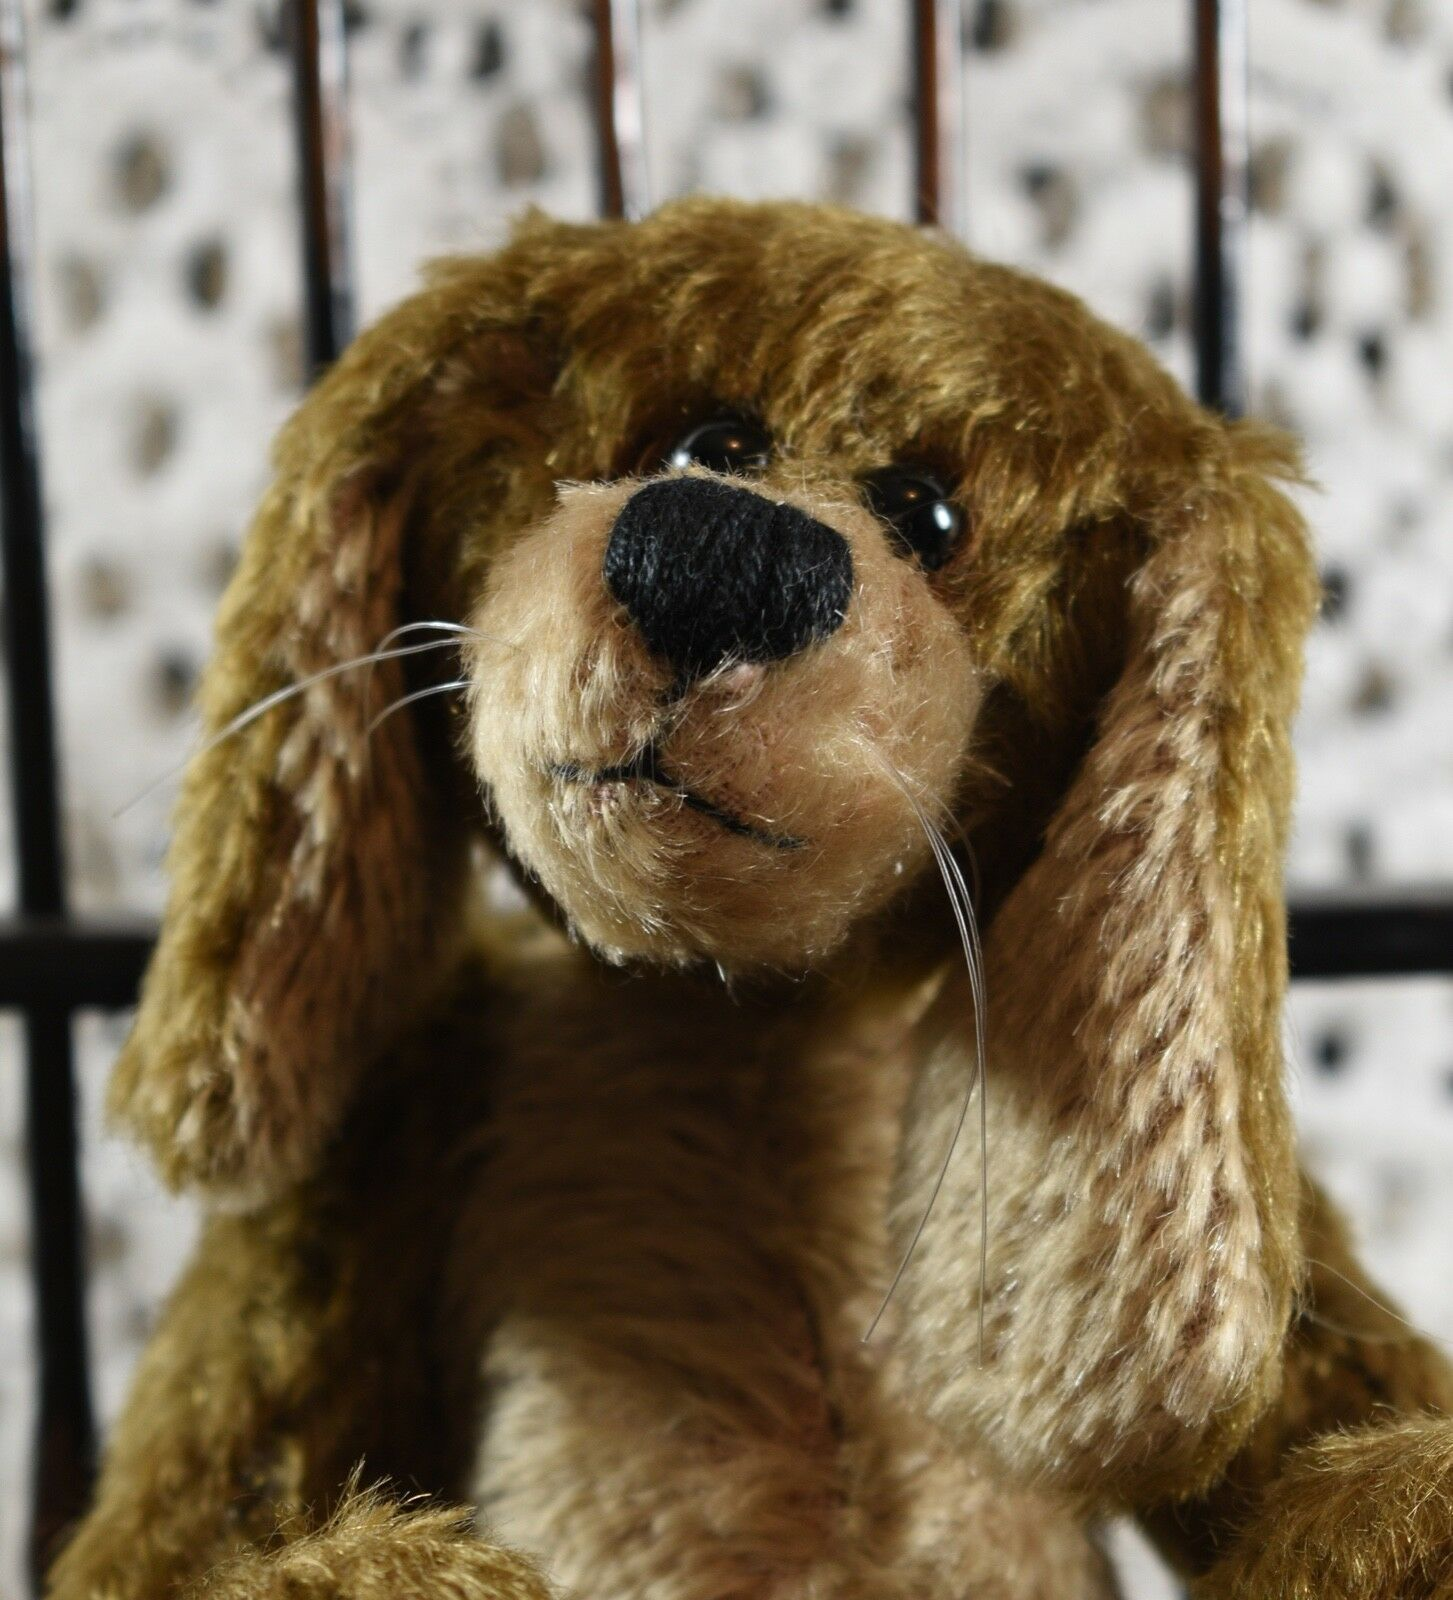 Cute One of a a a Kind rot or Ted Lesley Cope Artist Bear 'Roger' Bunny Rabbit 59f2ee